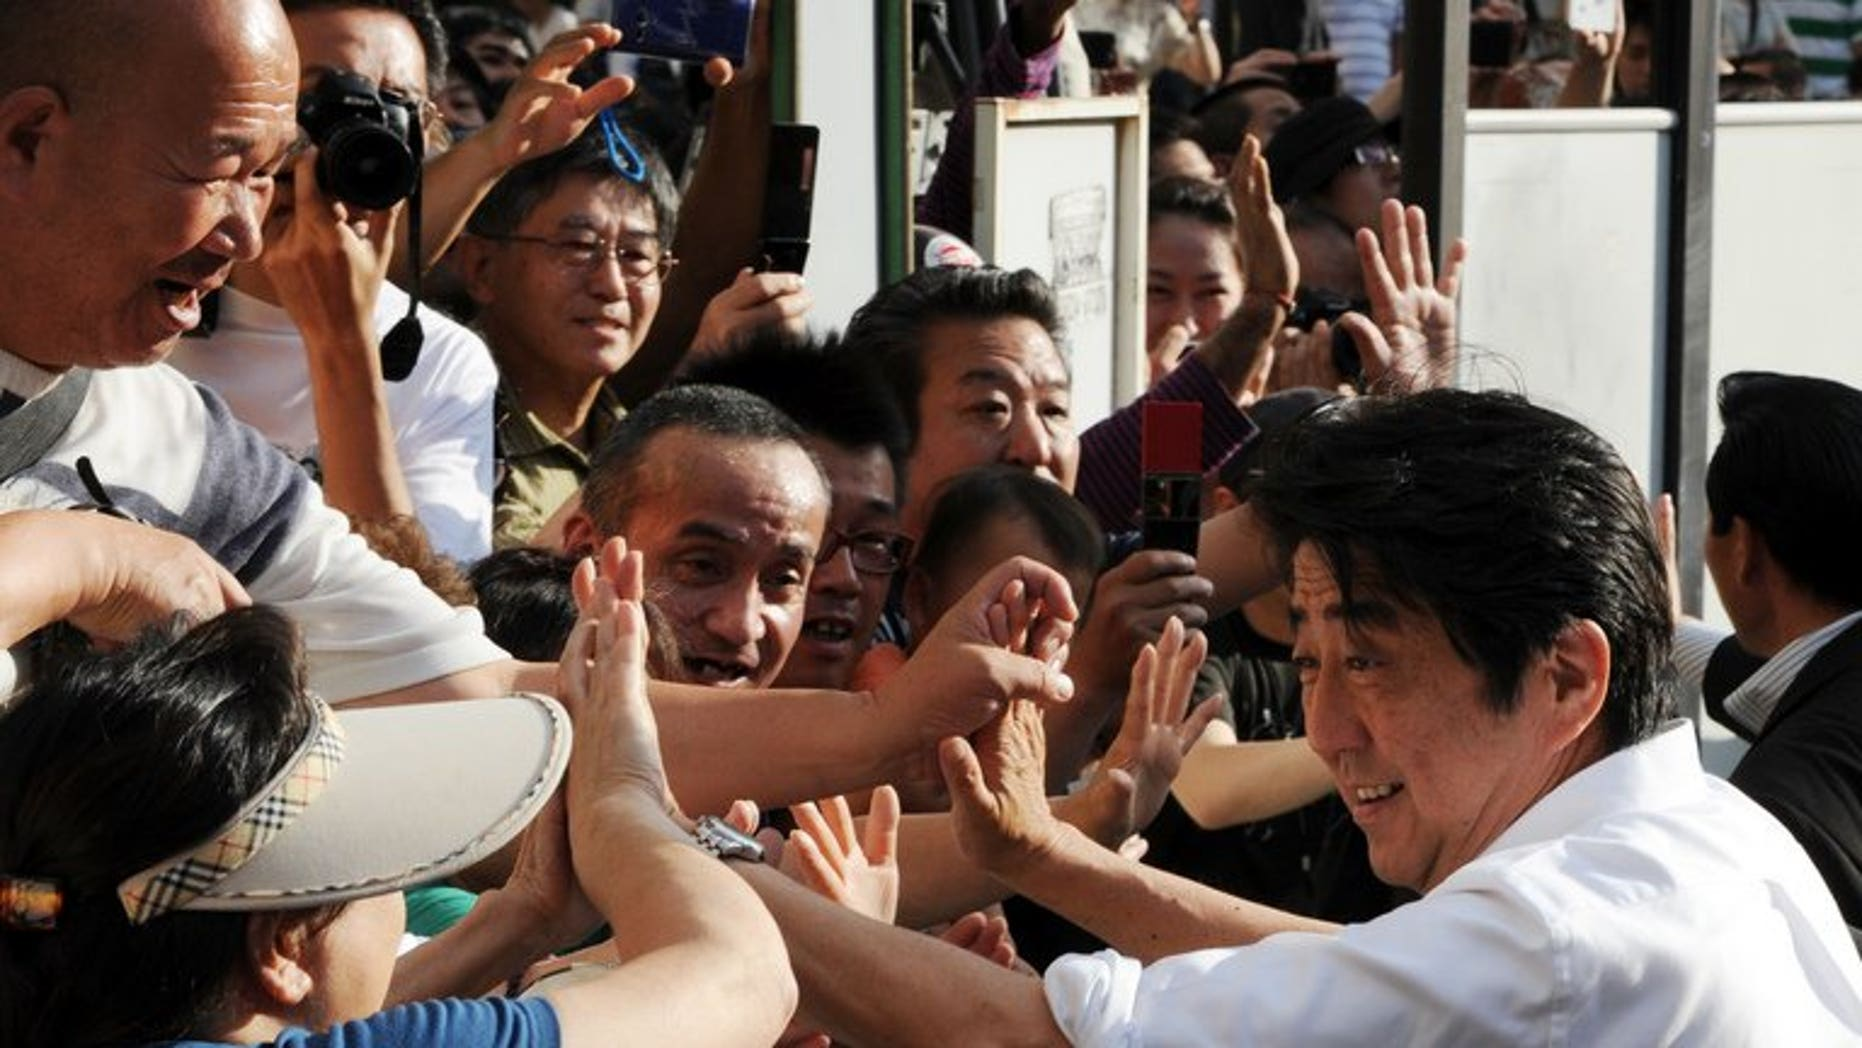 Japanese Prime Minister and ruling Liberal Democratic Party leader Shinzo Abe (R) greets supporters in Tokyo on July 20, 2013. Japanese voters go to the polls Sunday in an election expected to strengthen Abe's hand, potentially giving him power to push much-needed economic reforms.